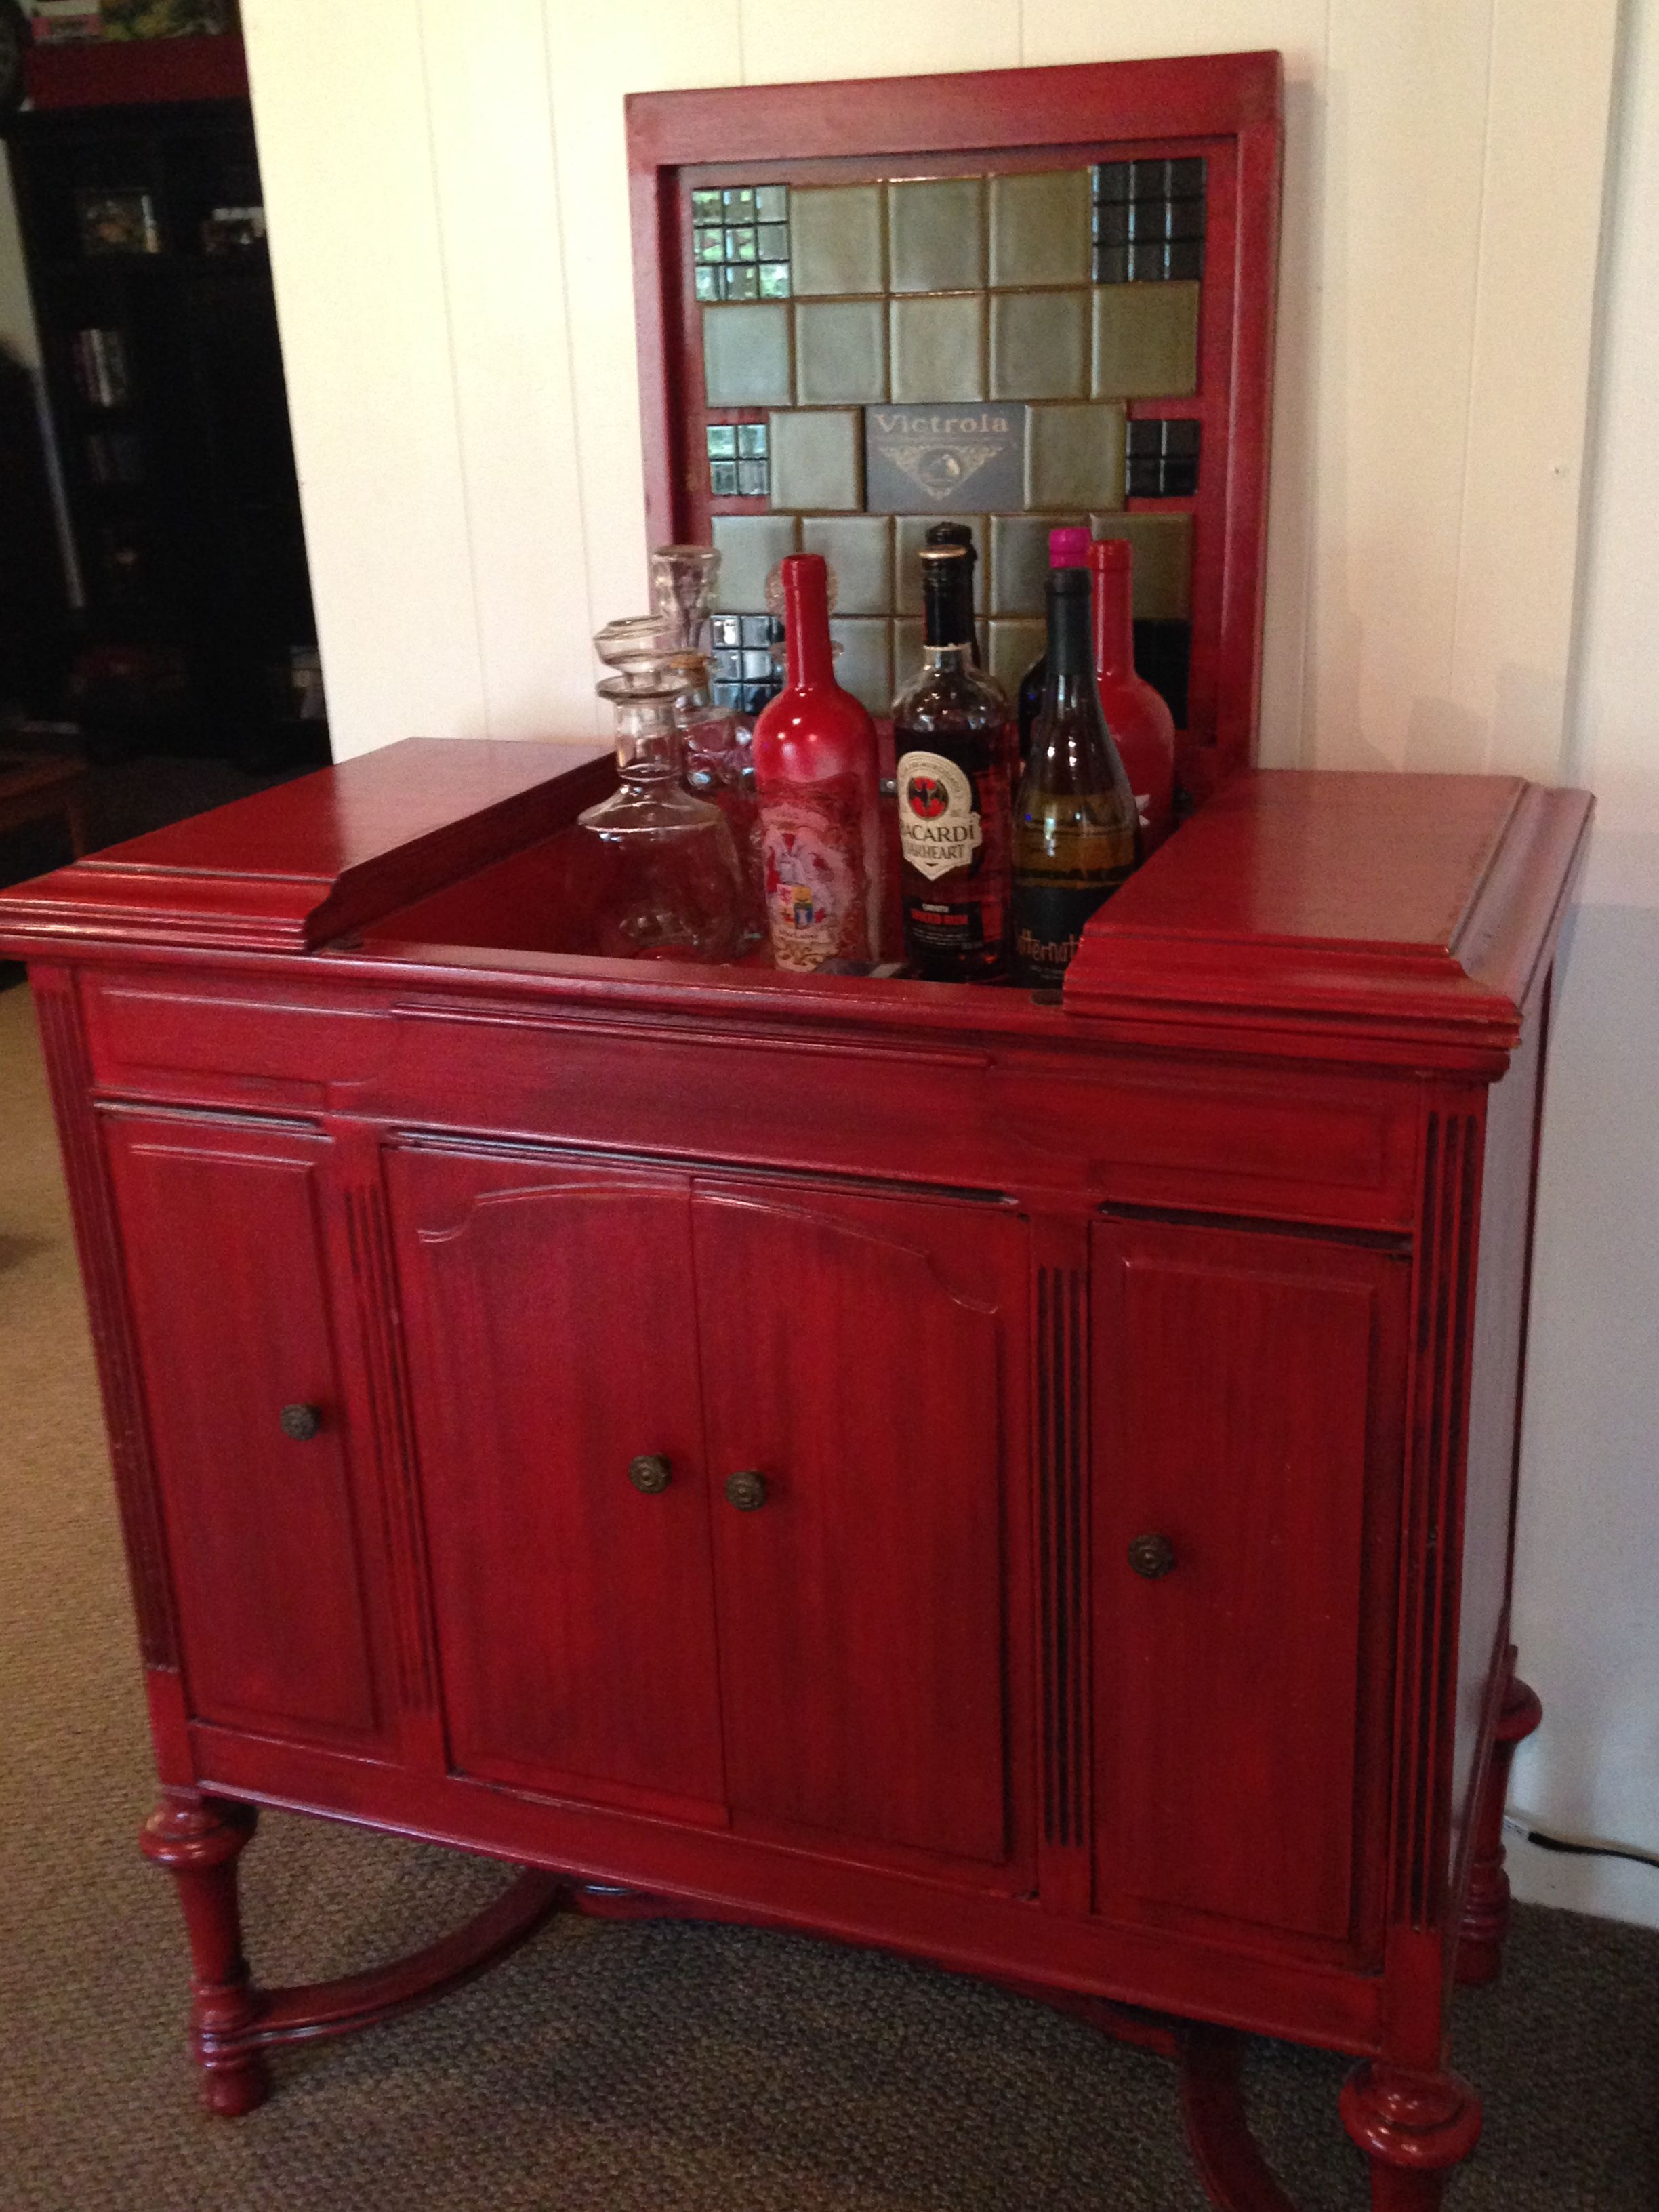 Vintage Victrola Cabinet The Patina Was Already There Along With The Original Tile We Have Used It As My Hus Diy Furniture Projects Furniture Diy Bar Set Up